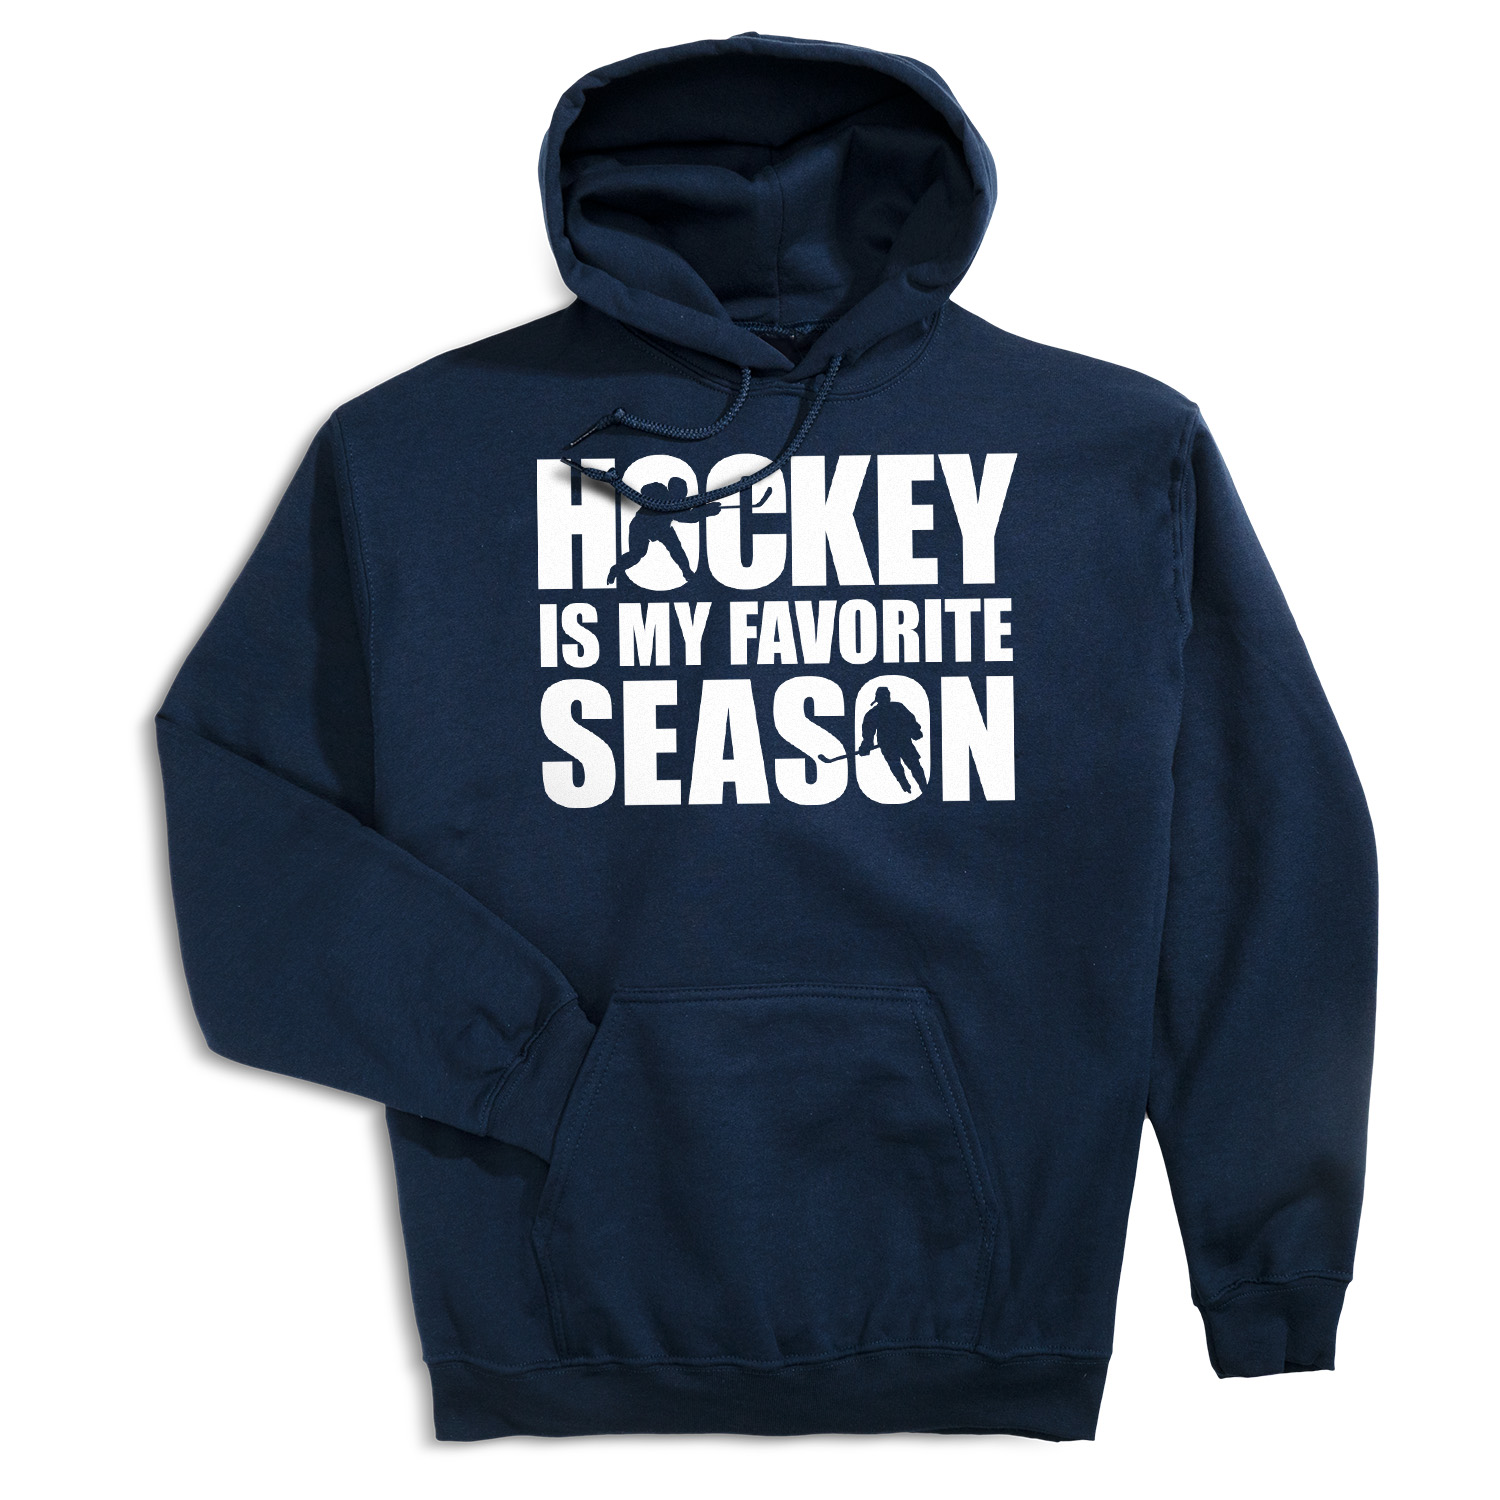 Hockey Hooded Sweatshirt - Hockey Is My Favorite Season